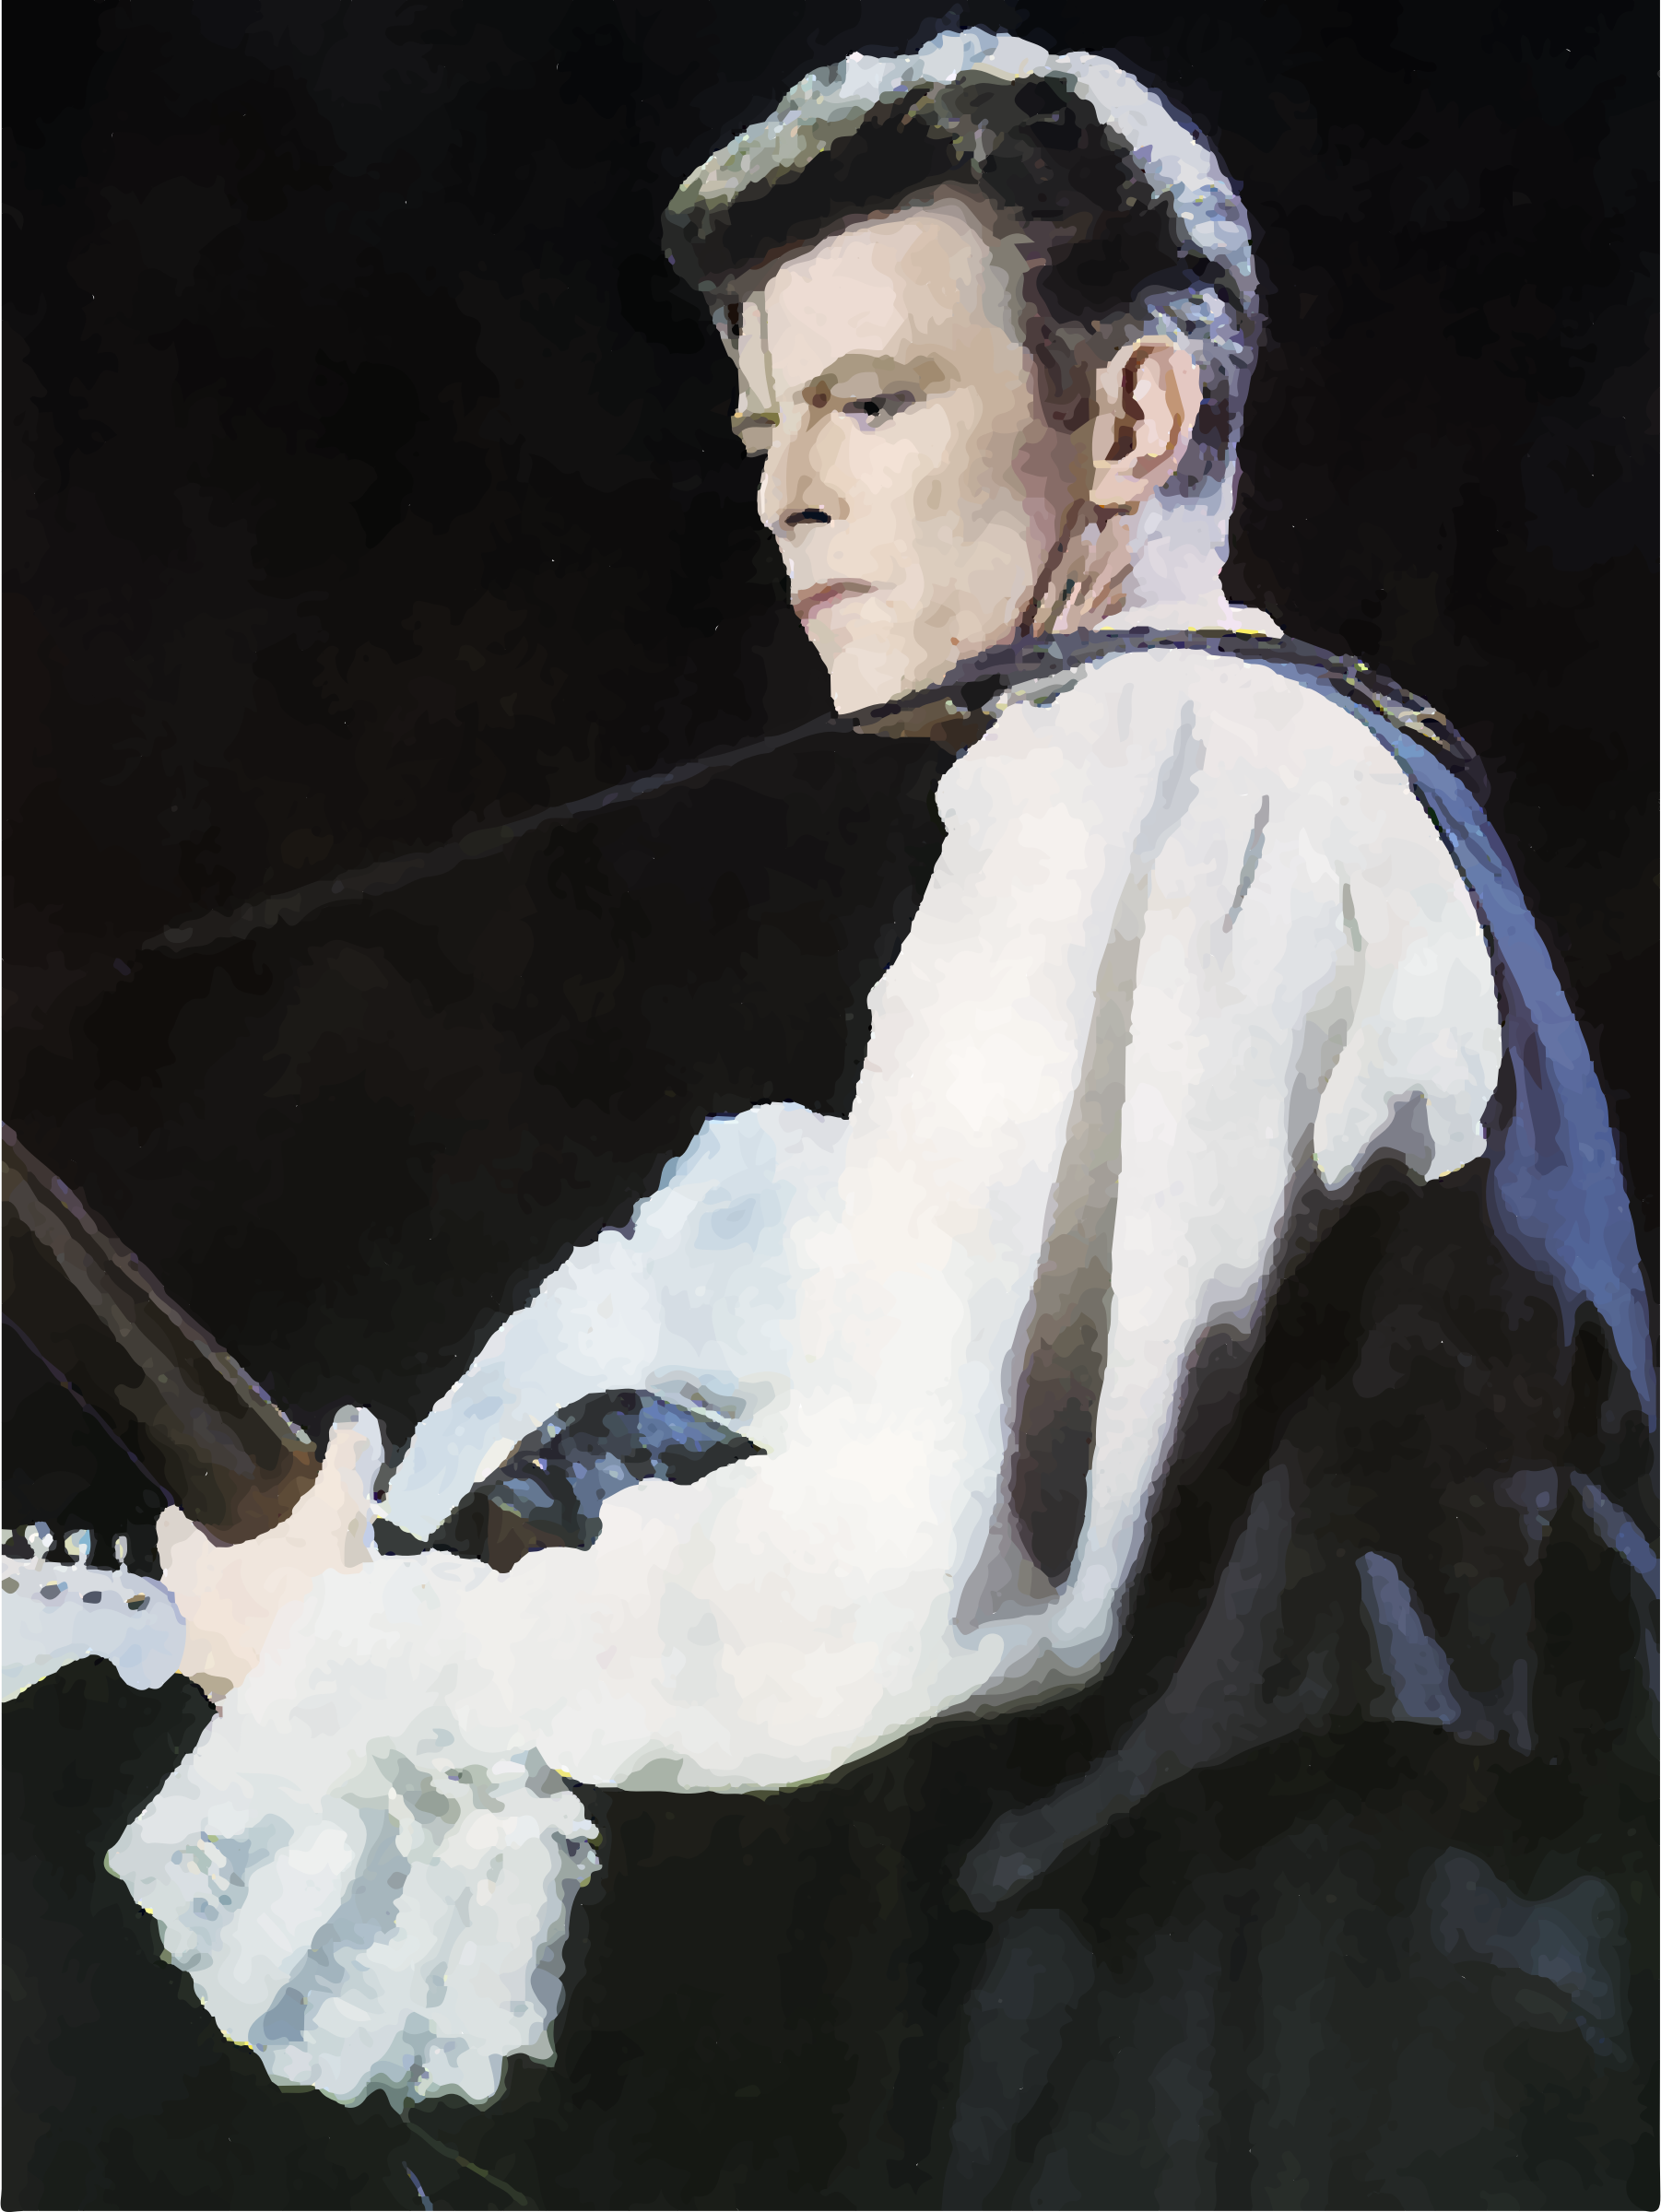 David Bowie Rock In Chile September 1990 by GDJ